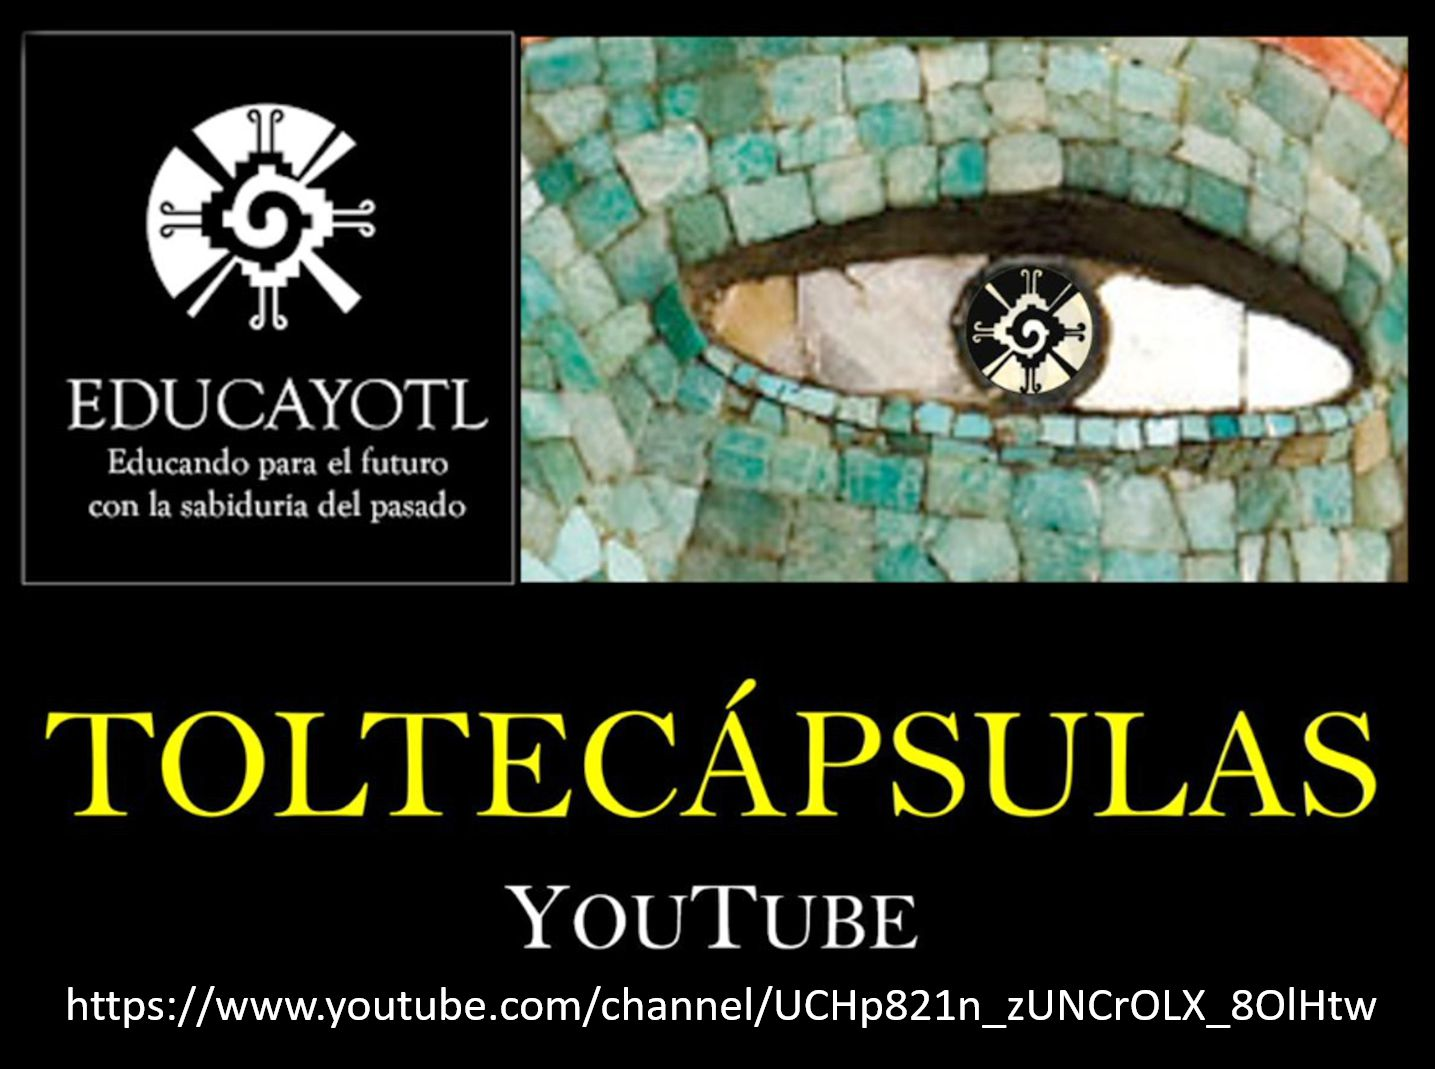 TOLTECAPSULAS en You Tube